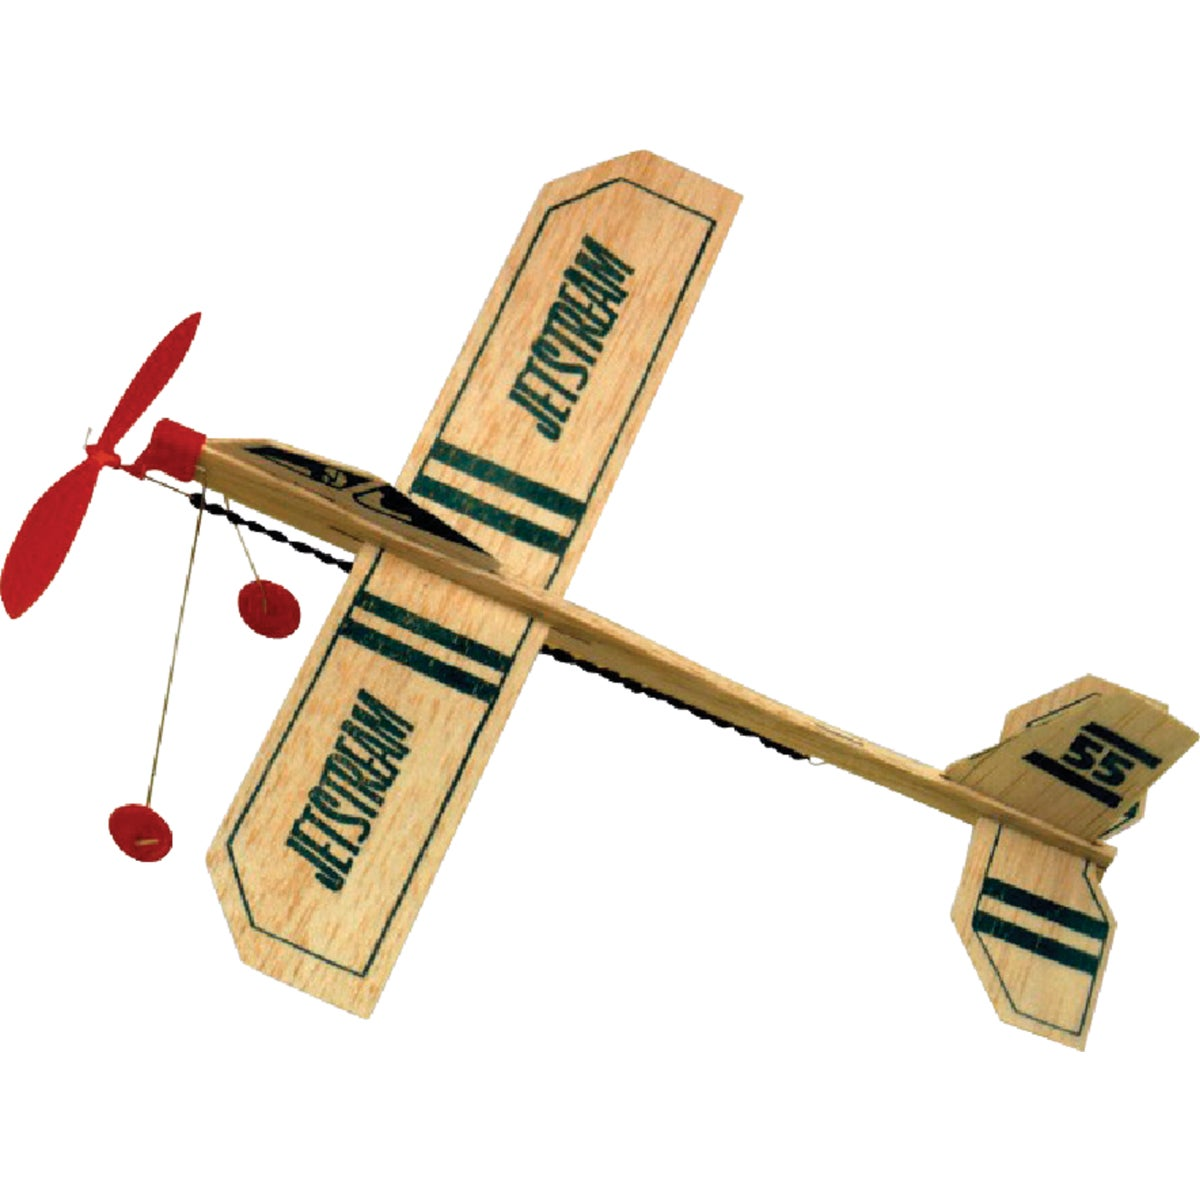 JETSTREAM BALSA AIRPLANE